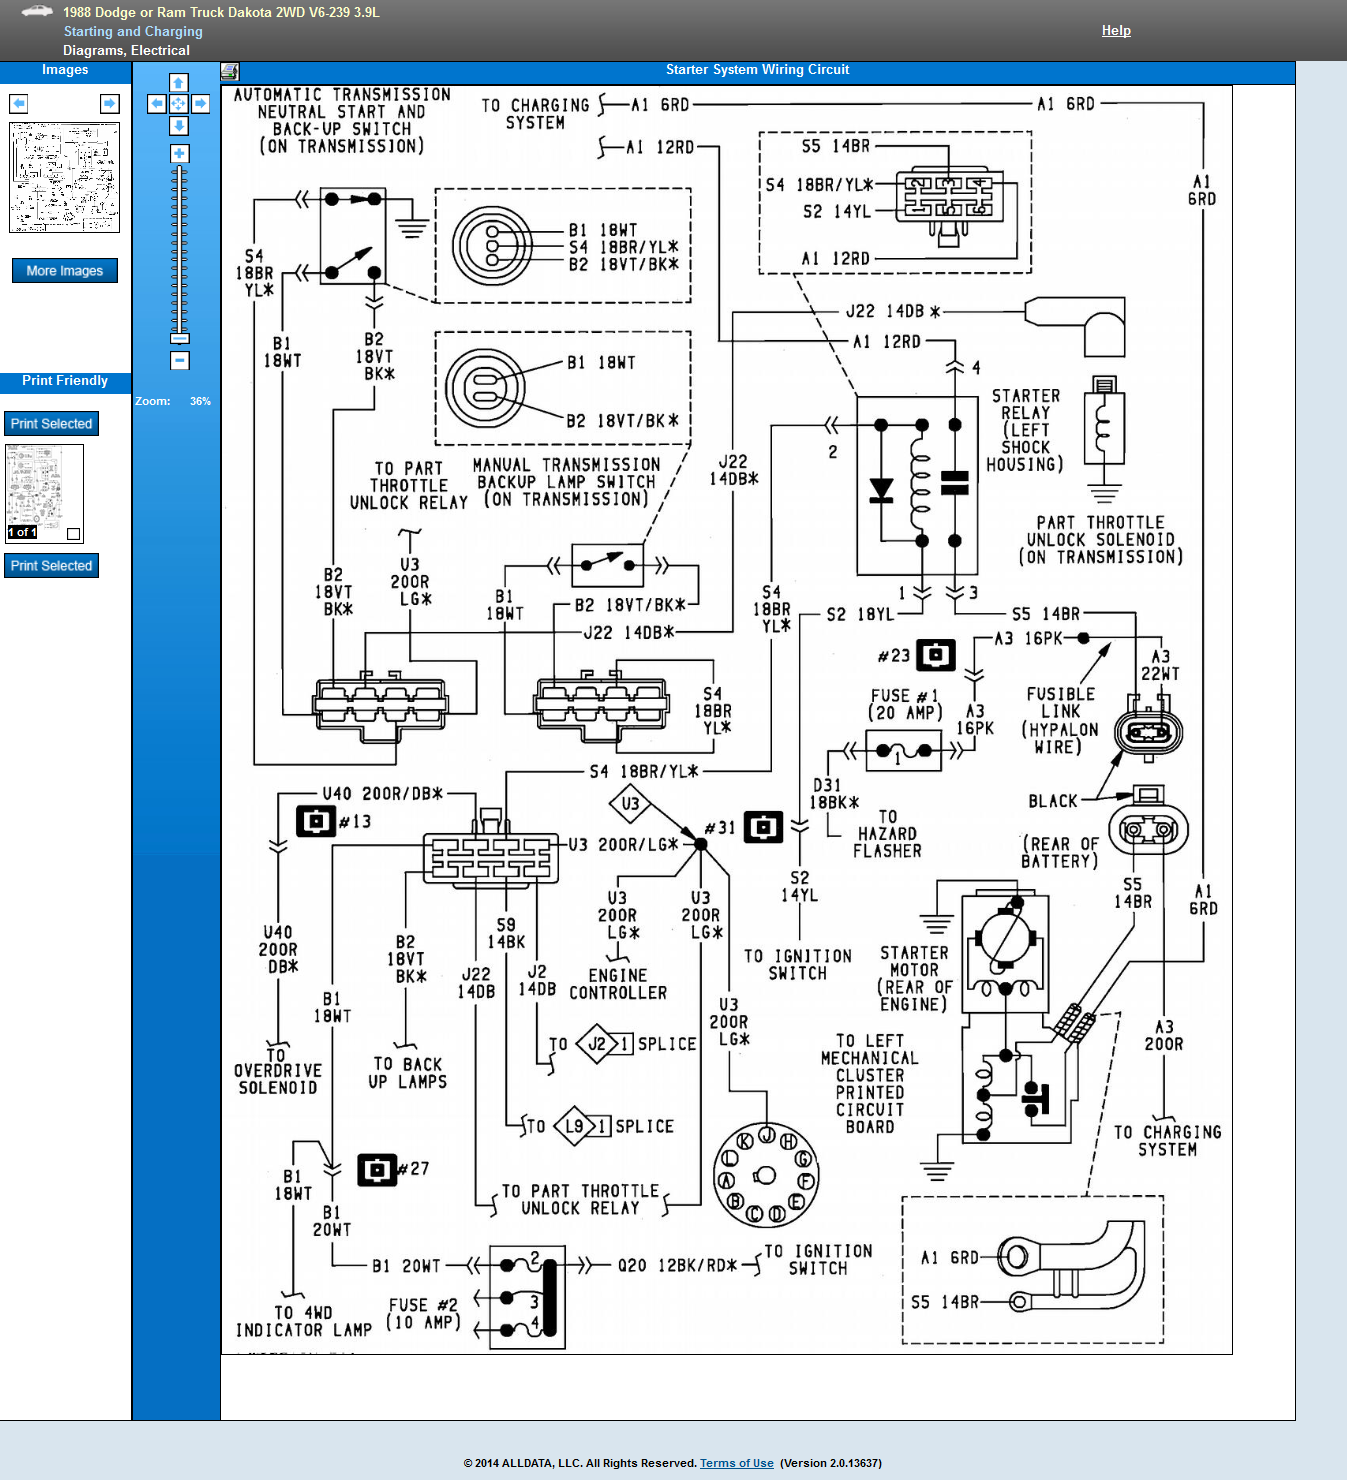 [SCHEMATICS_4FD]  1988 dakota 3.9 ignition system schematic needed. truck doesnt have voltage  to plugs. computer, ASD, starter relay, | 1988 Dodge Dakota Engine Wiring Diagram |  | JustAnswer